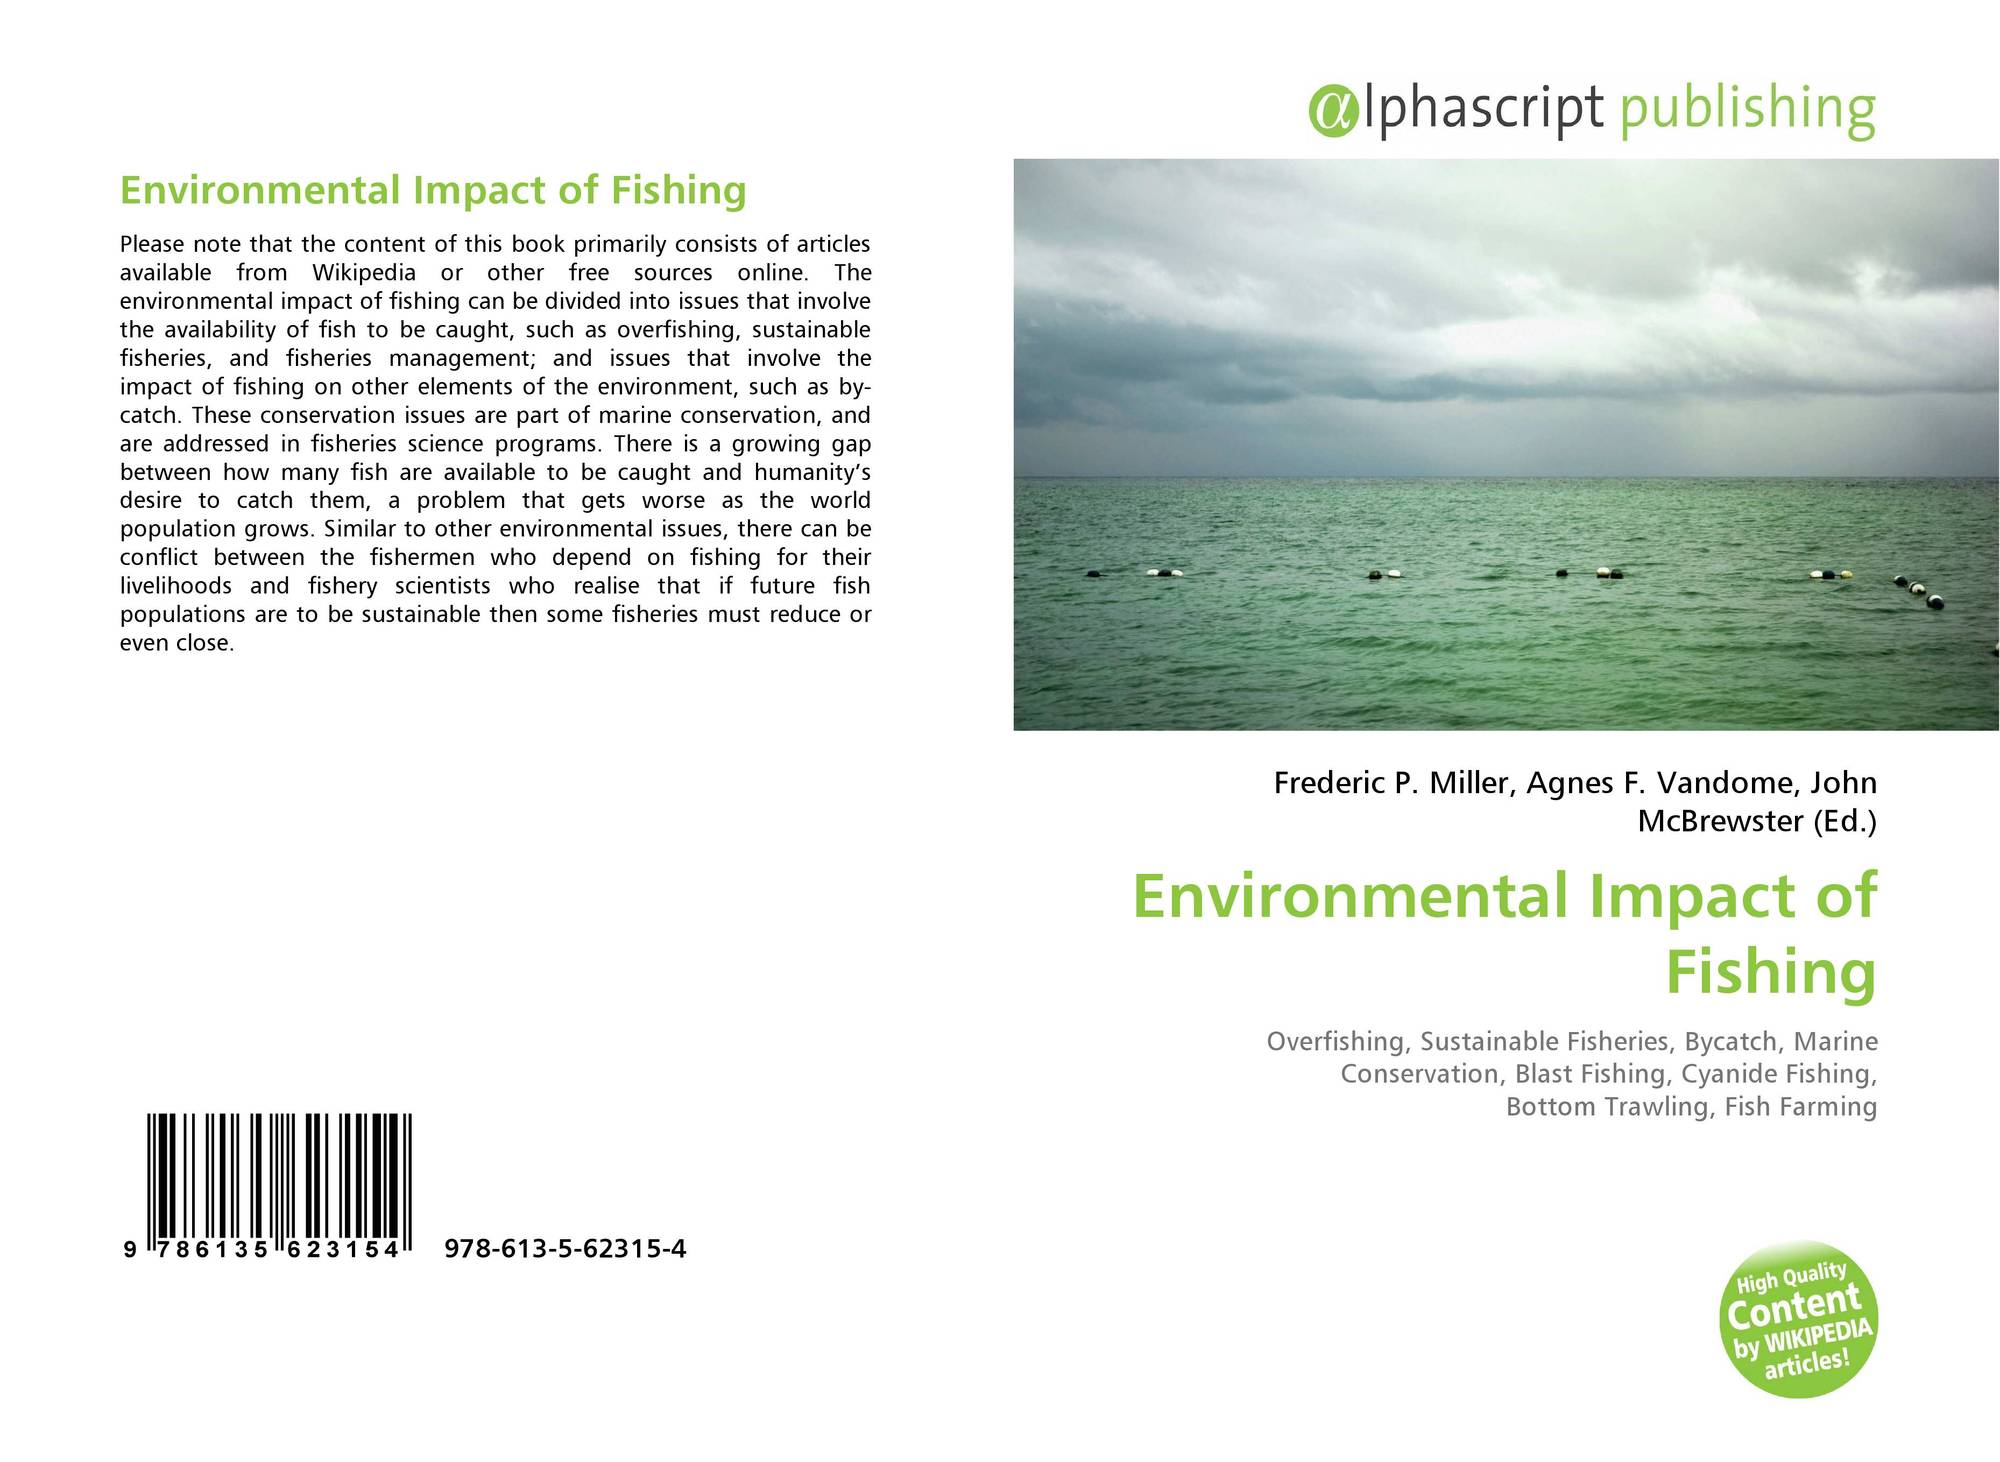 the environmental impact of fisheries and fish Finfish and shellfish aquaculture impact on the environment in different ways finfish culture is usually an intensive industry that involves an addition of solids and nutrients to the marine environment, and is recognised as potentially causing environmental degradation through these inputs.